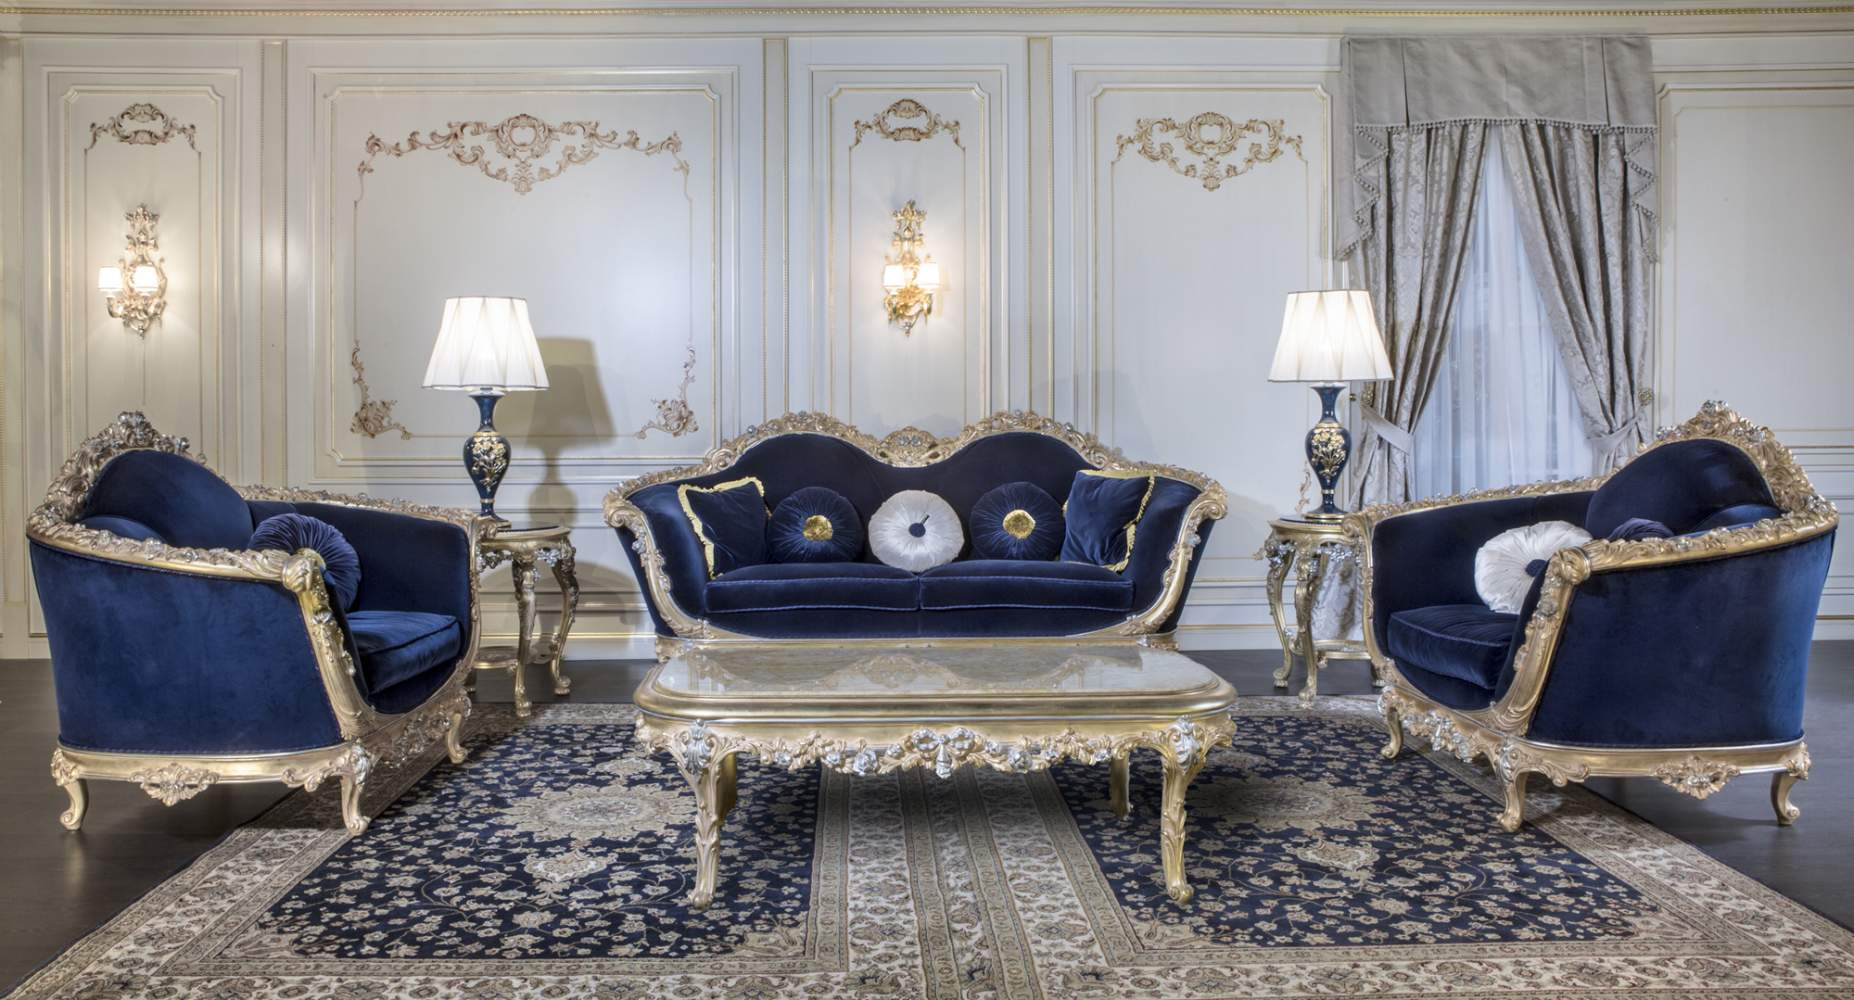 Luxury living room in Baroque style Empire